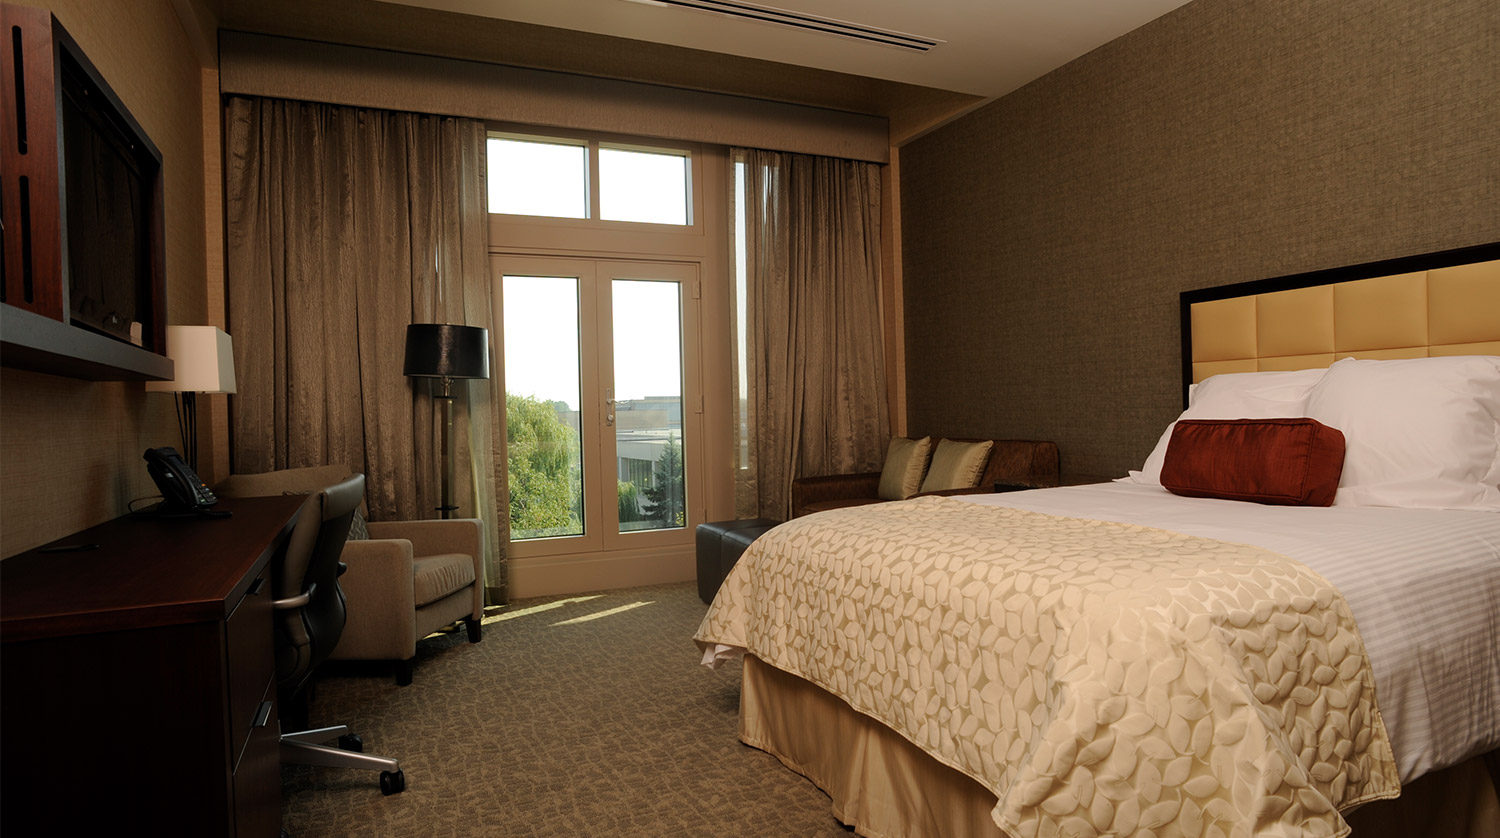 College of DuPage_ Culinary and Hospitality Center hotel room